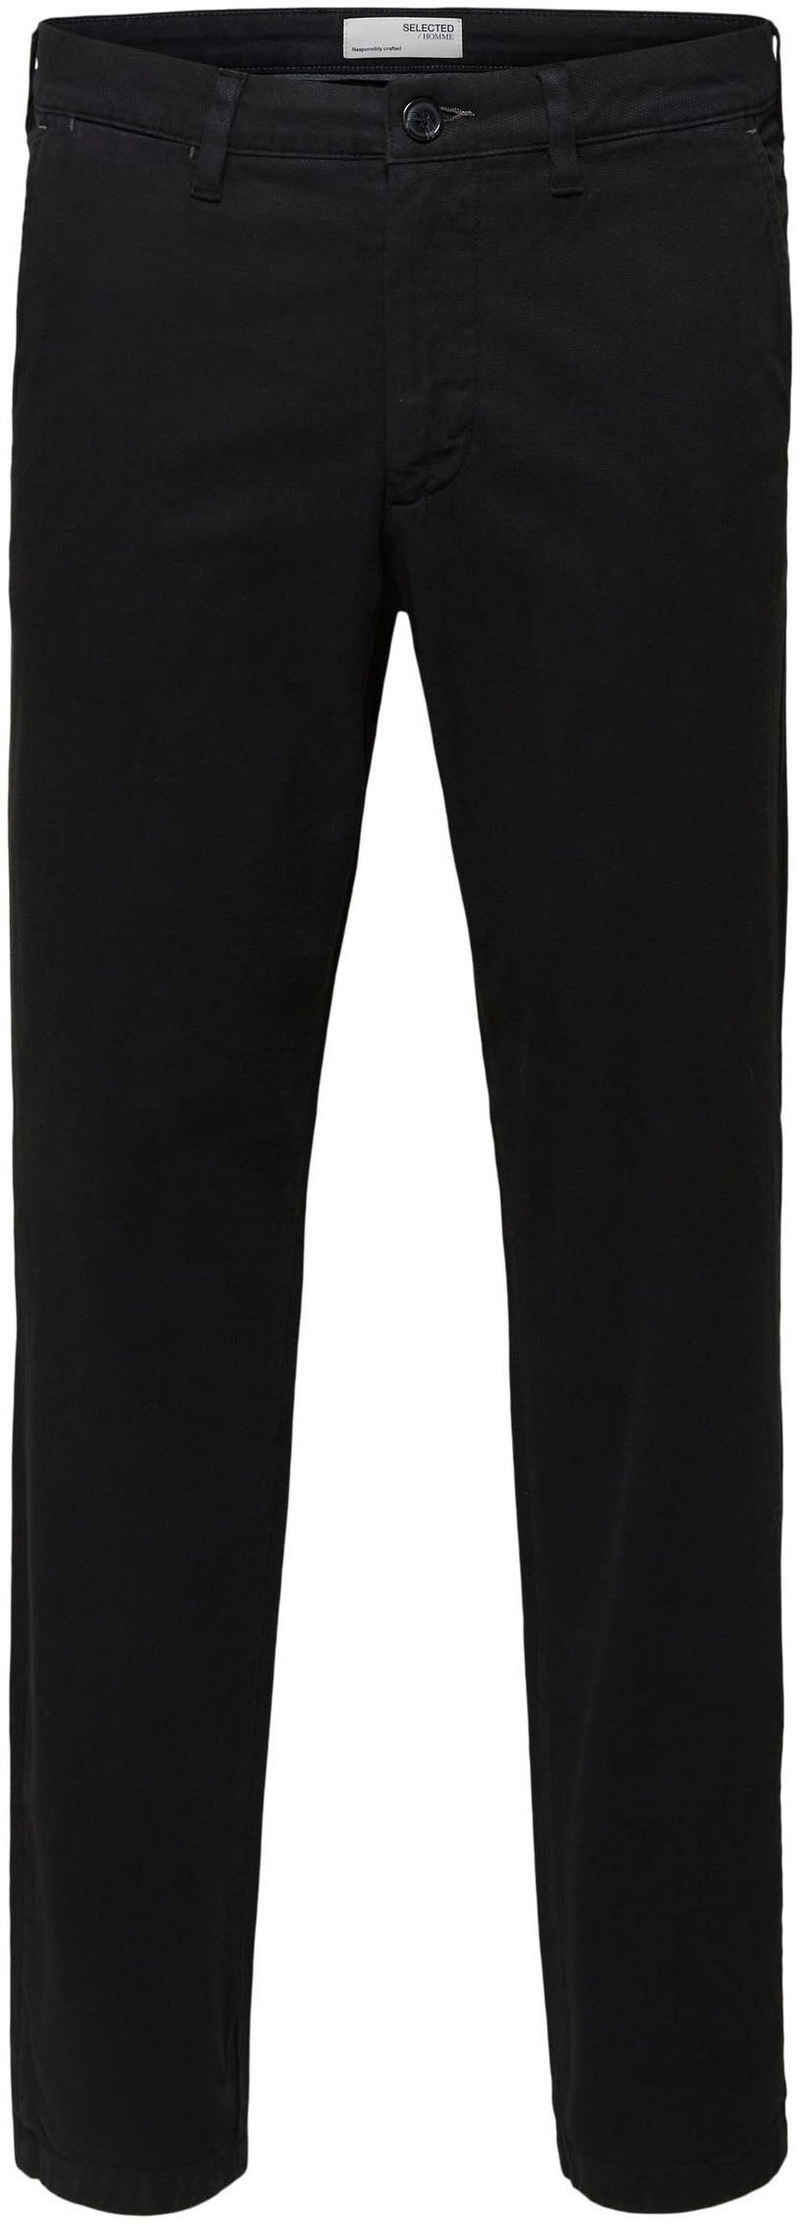 SELECTED HOMME Stoffhose »SLIM-MILES FLEX STRUCTURE PANTS«